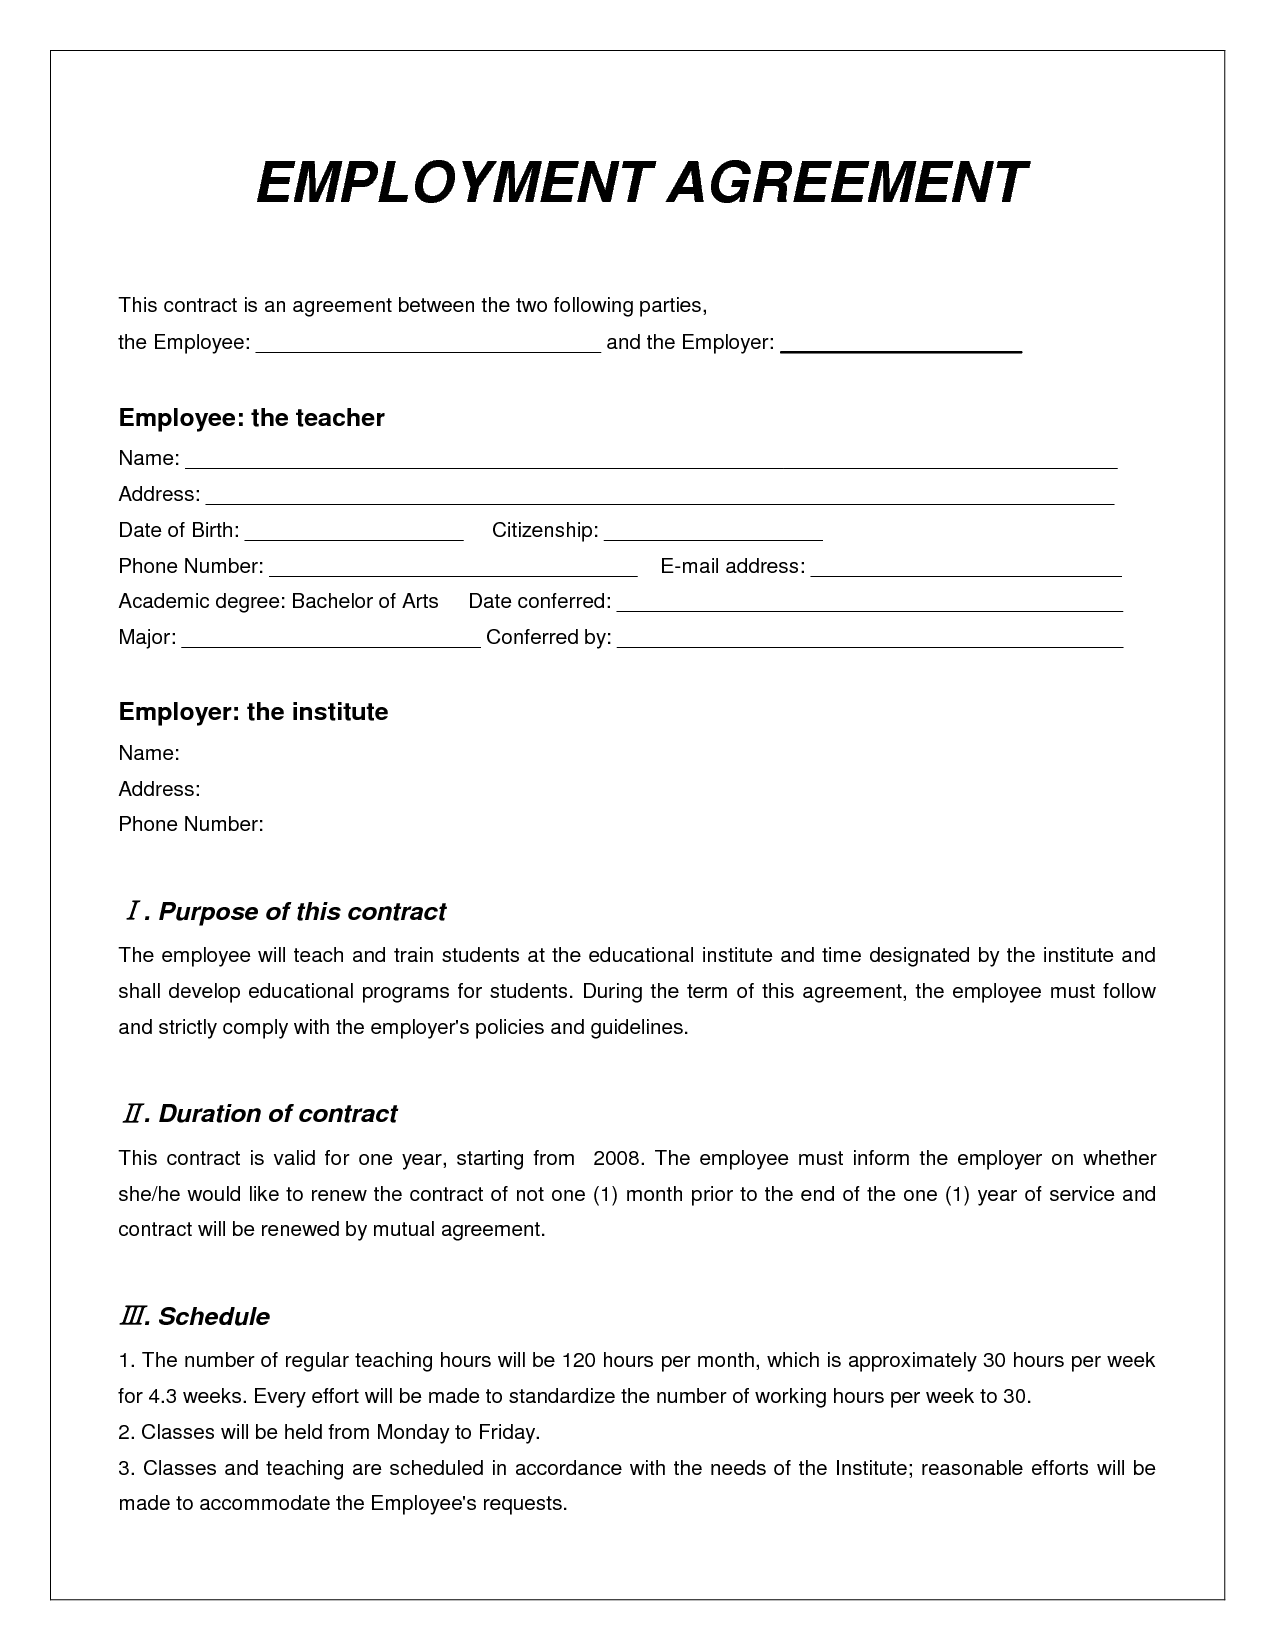 Employment Agreement Contract Template Free Printable Documents Contract Template Contract Agreement Construction Contract